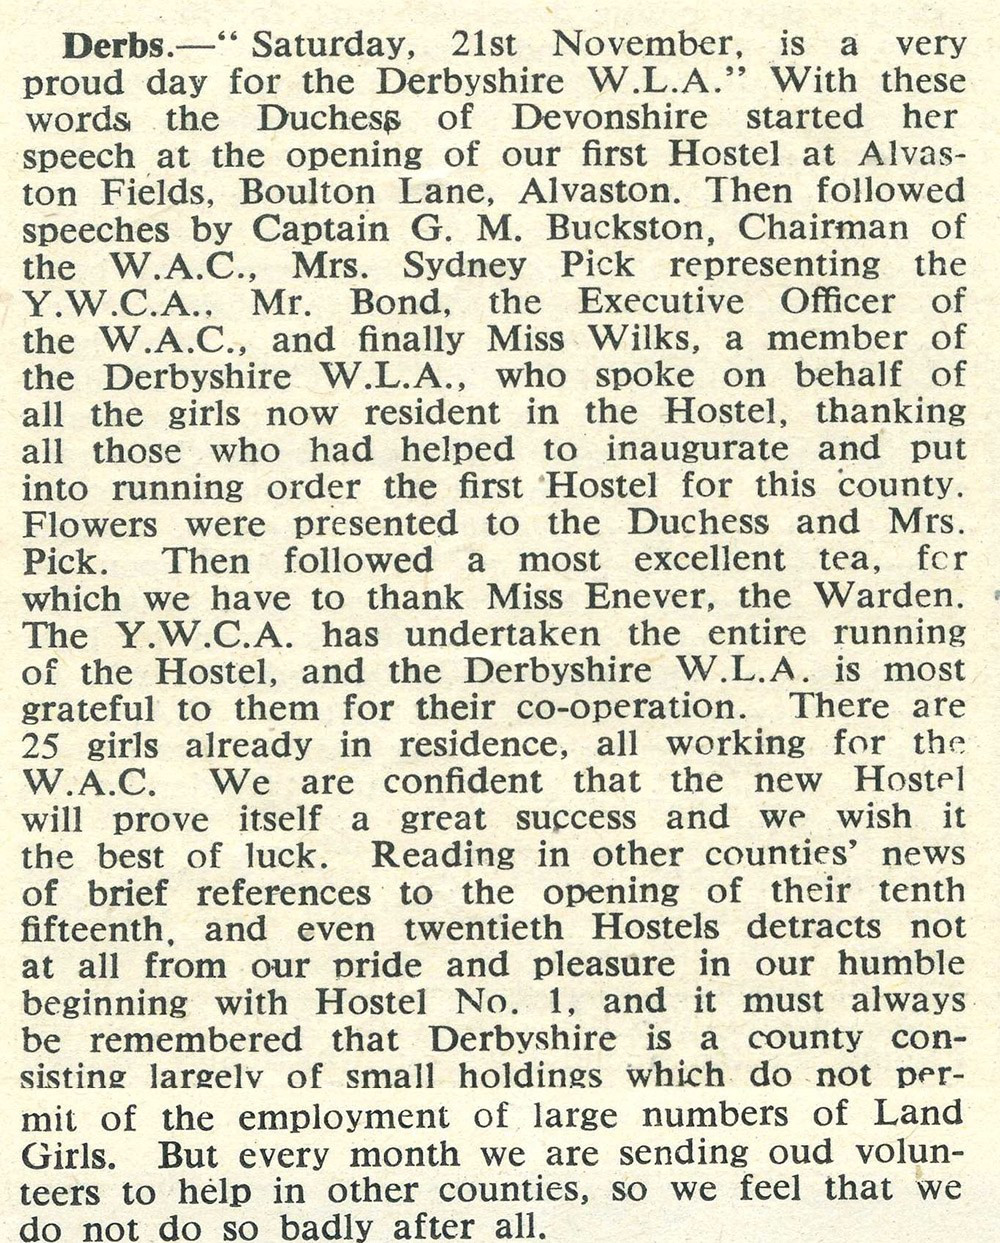 'At a party in Derbyshire', opening of hostel at Alvaston Fields, Boulton Lane Photo from p13 of 'The Land Girl', December 1942